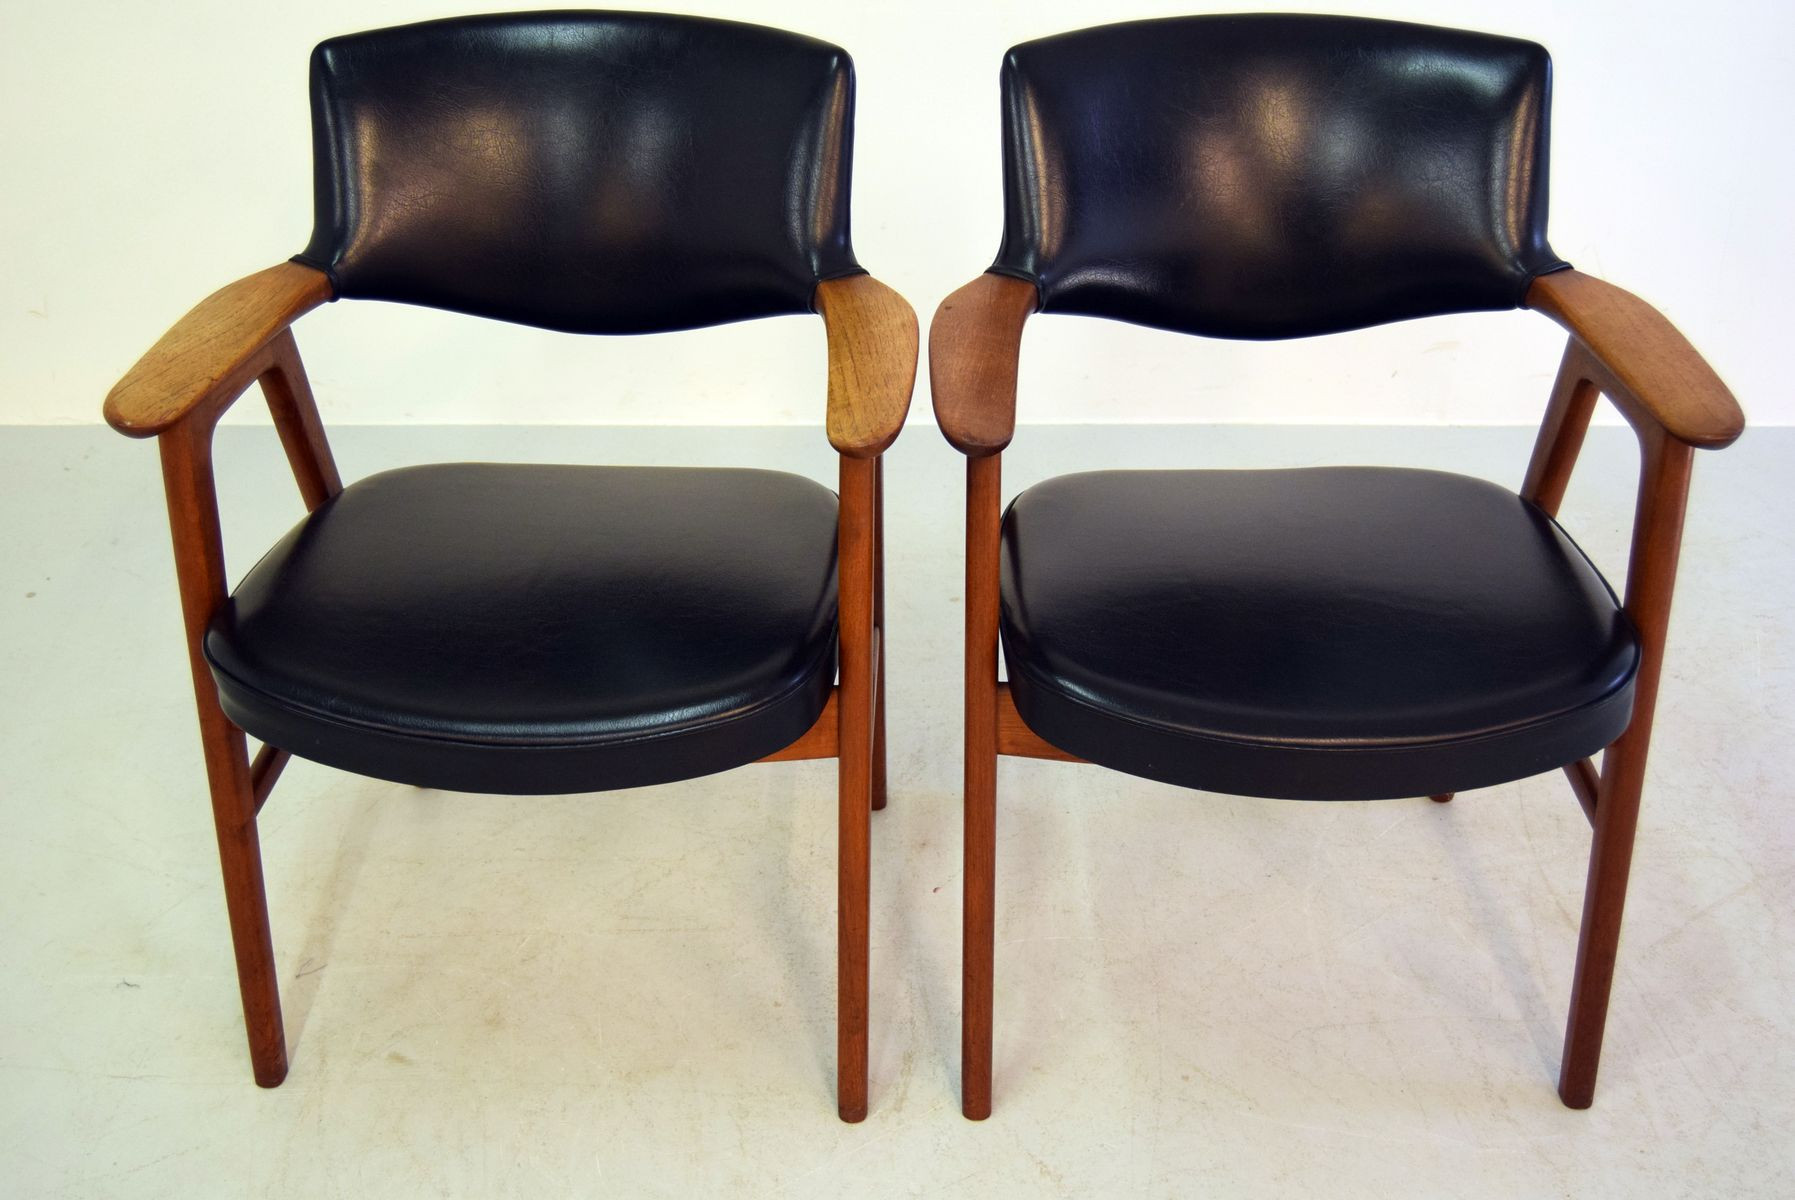 Best ideas about Mid Century Office Chair . Save or Pin Mid Century fice Chairs by Erik Kirkegaard for Glostrup Now.